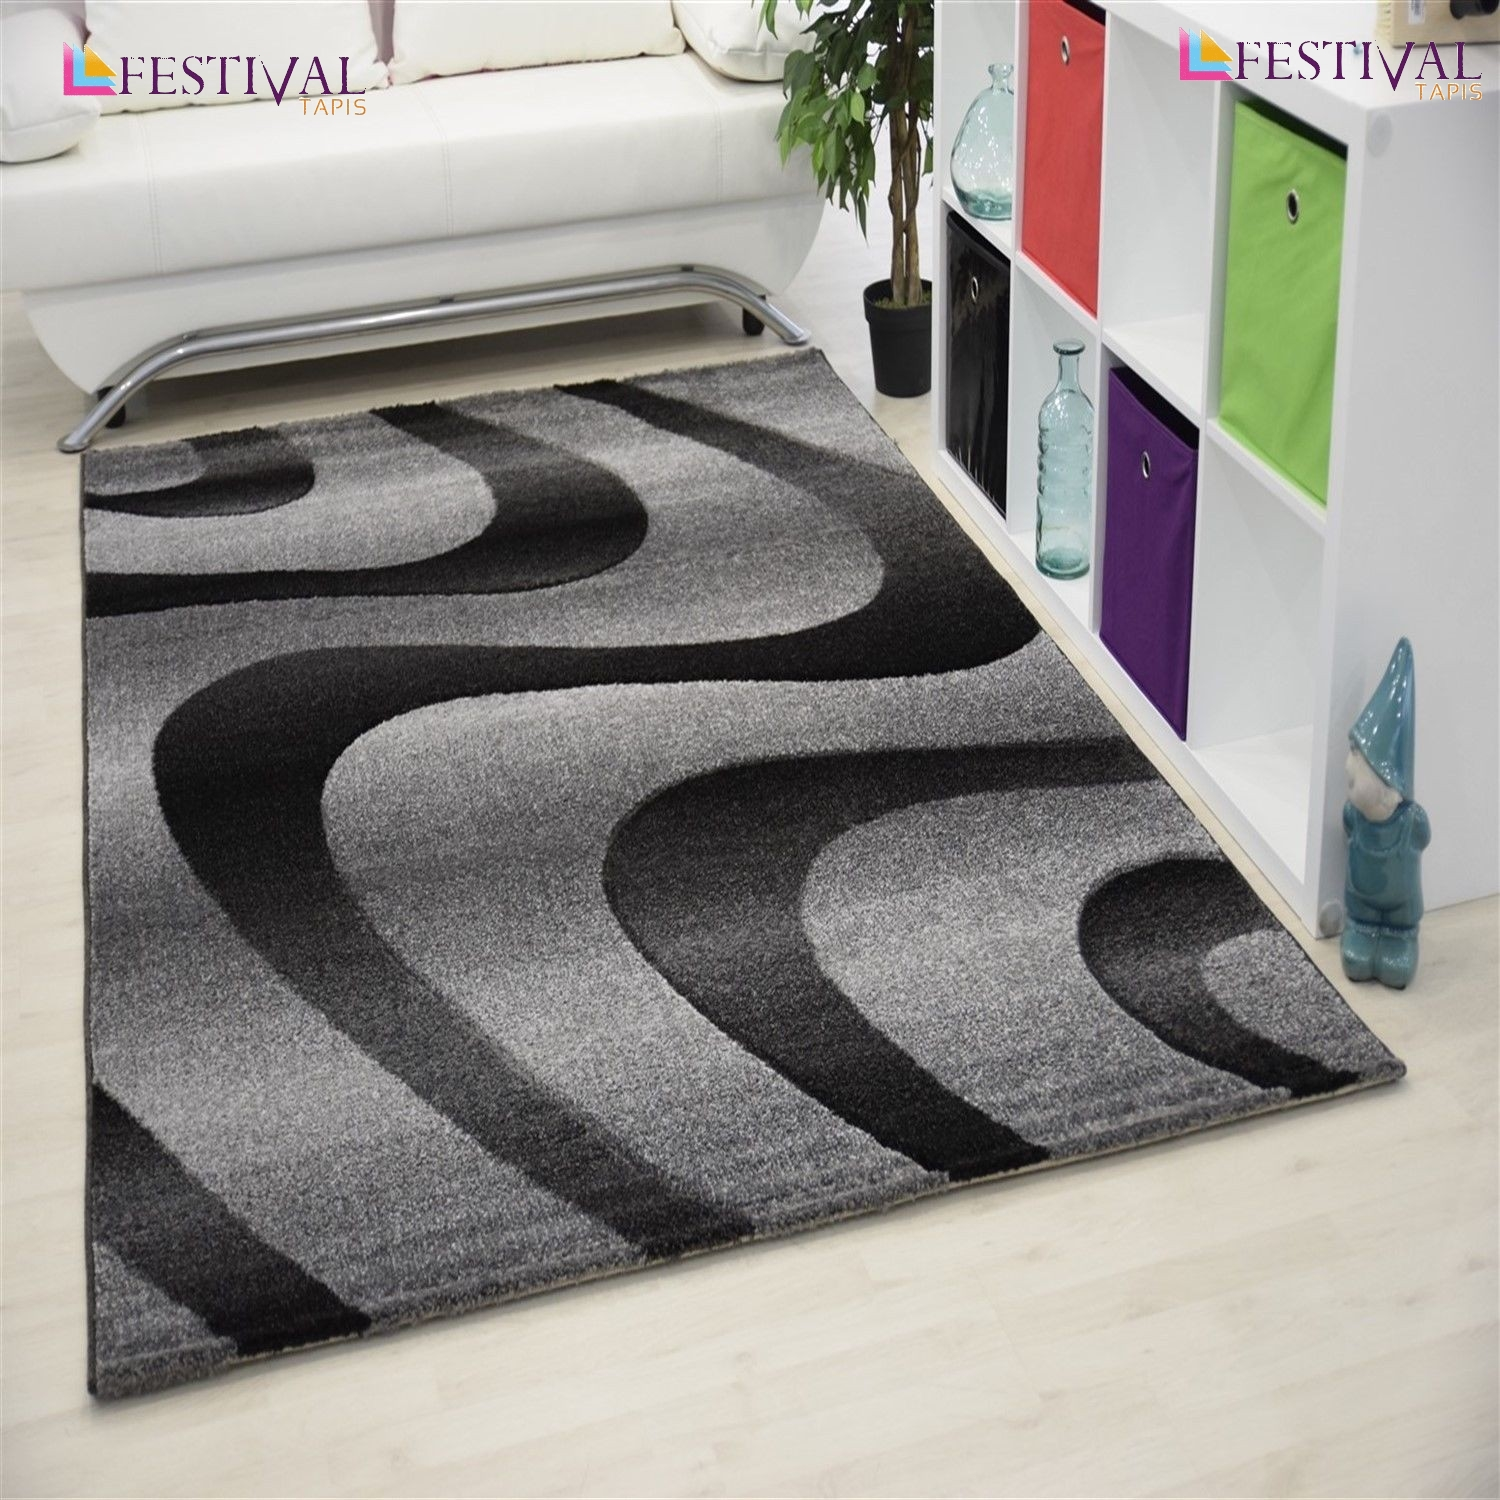 Tapis courtes m ches pour salon gris eden for Tapis decoratif pour salon